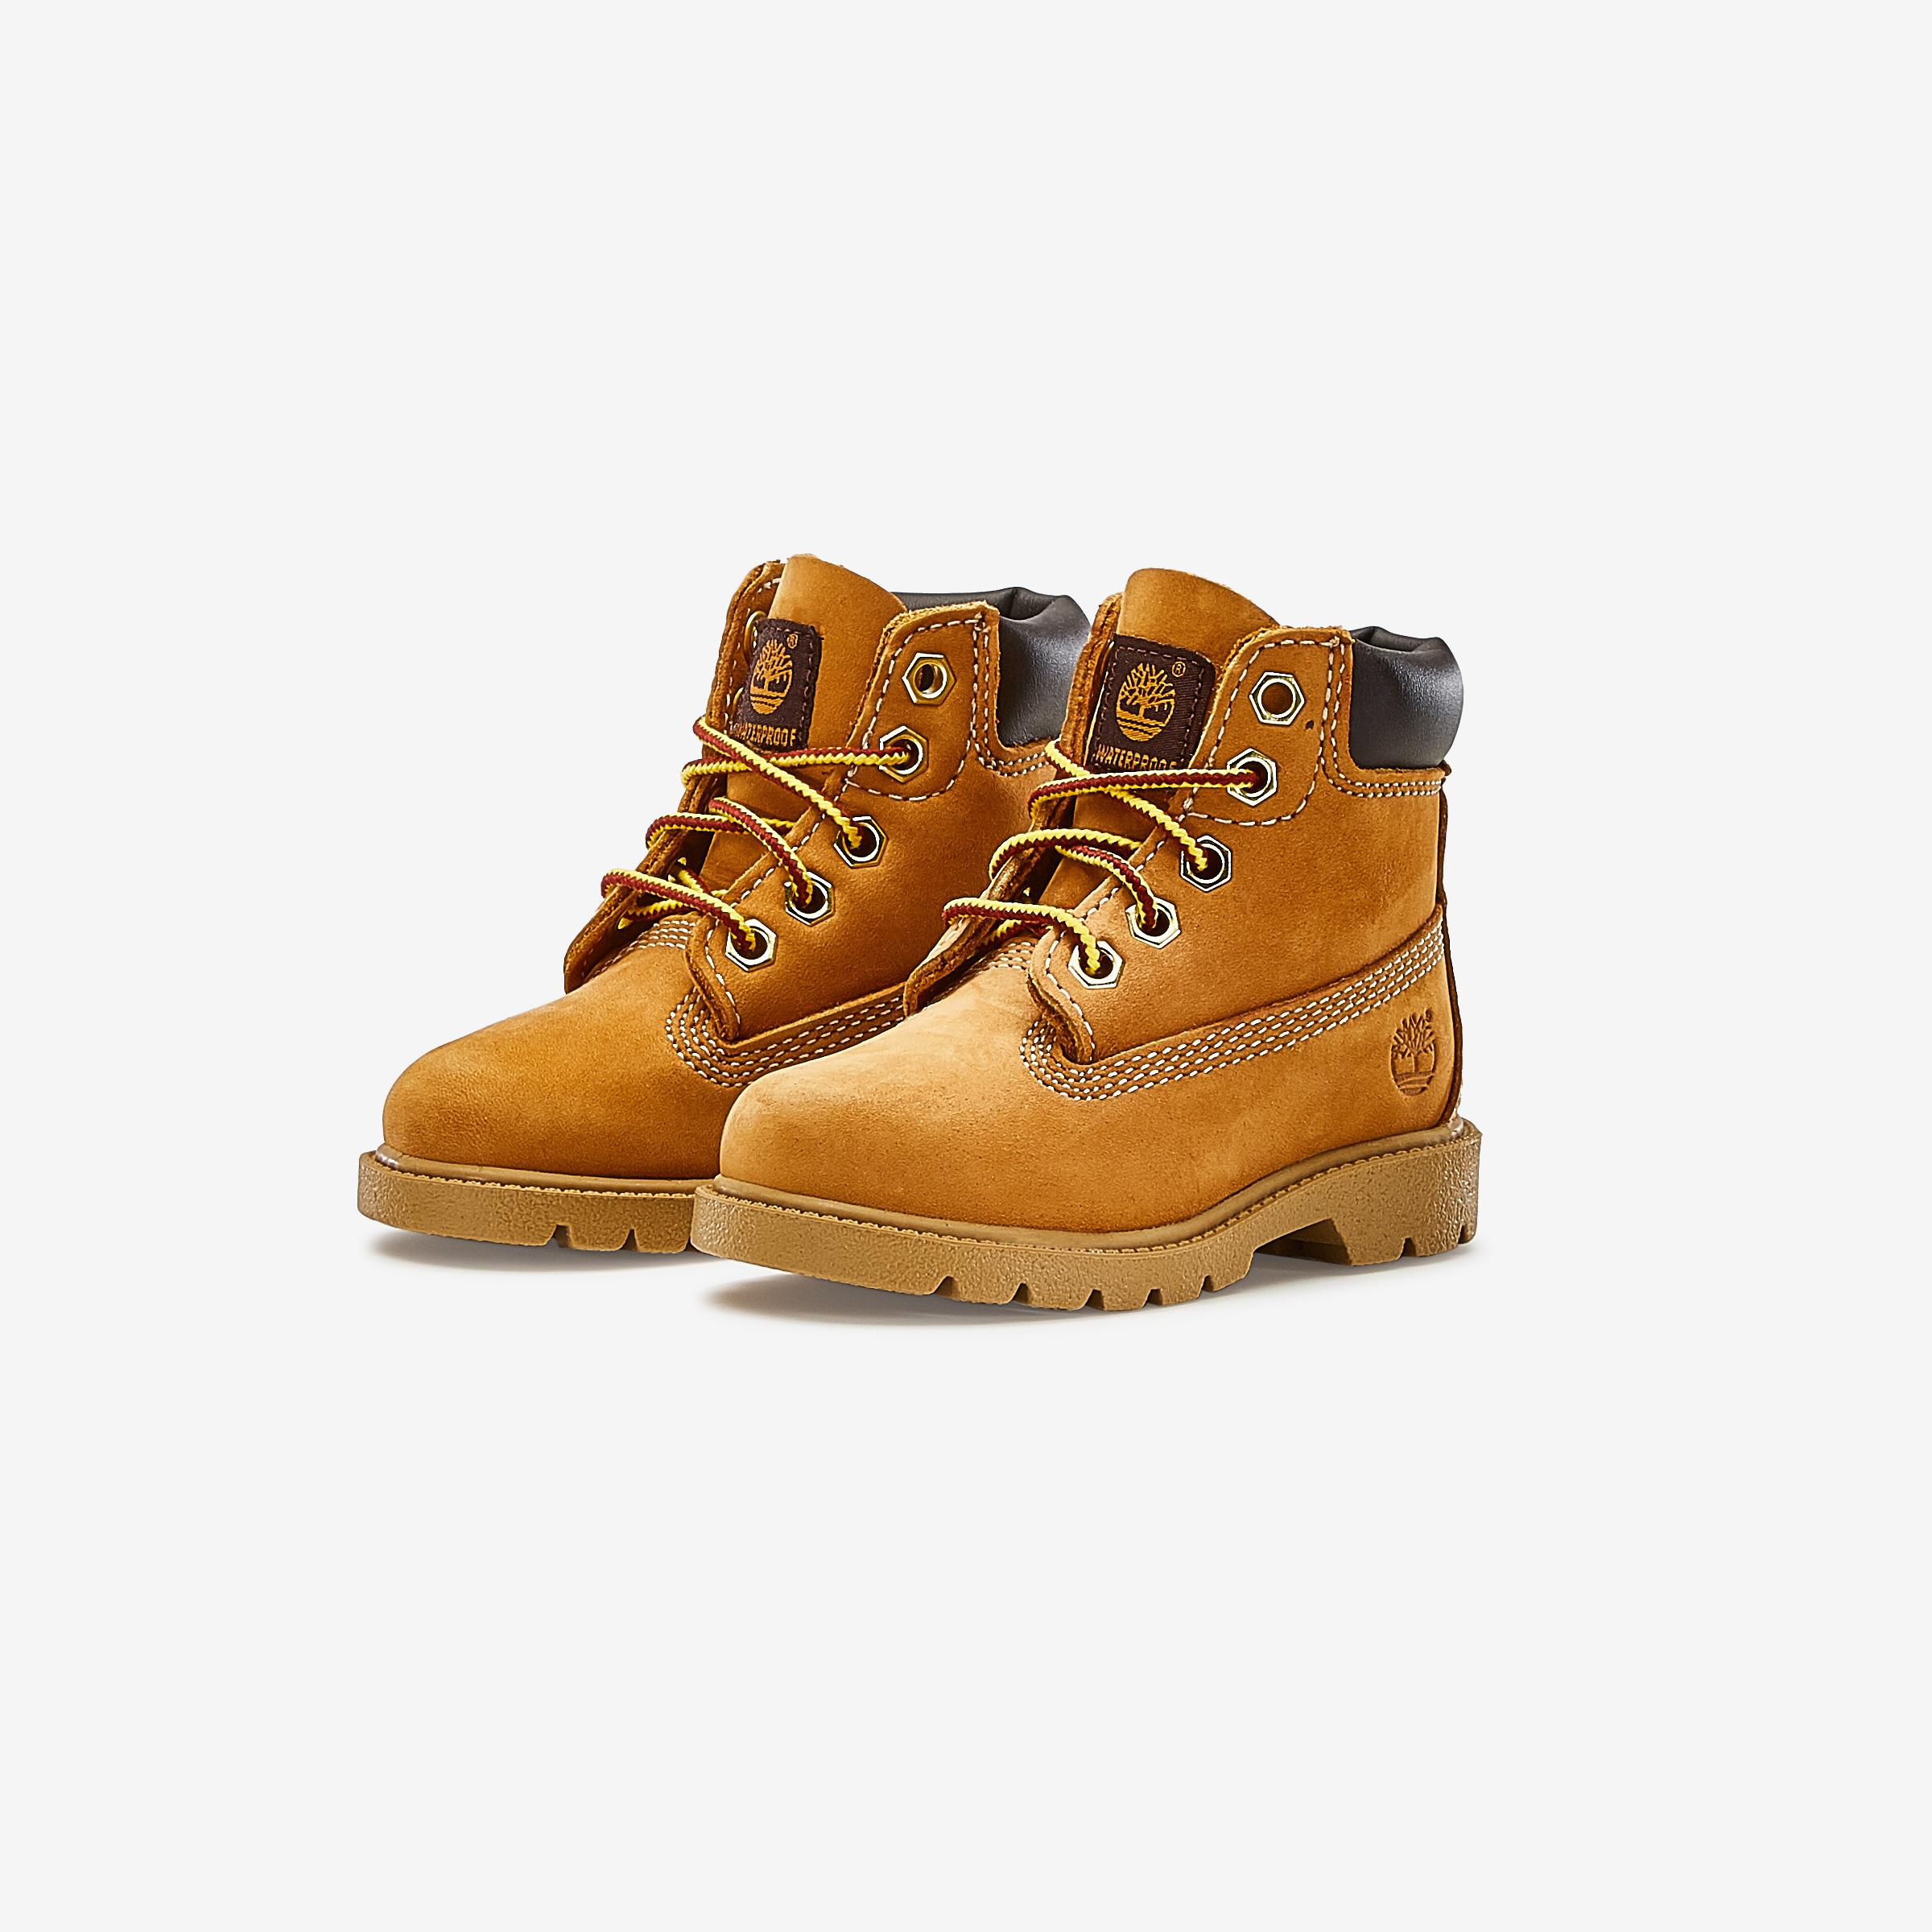 EbLens   Timberland Toddler 6 Inch Classic Waterproof Boots